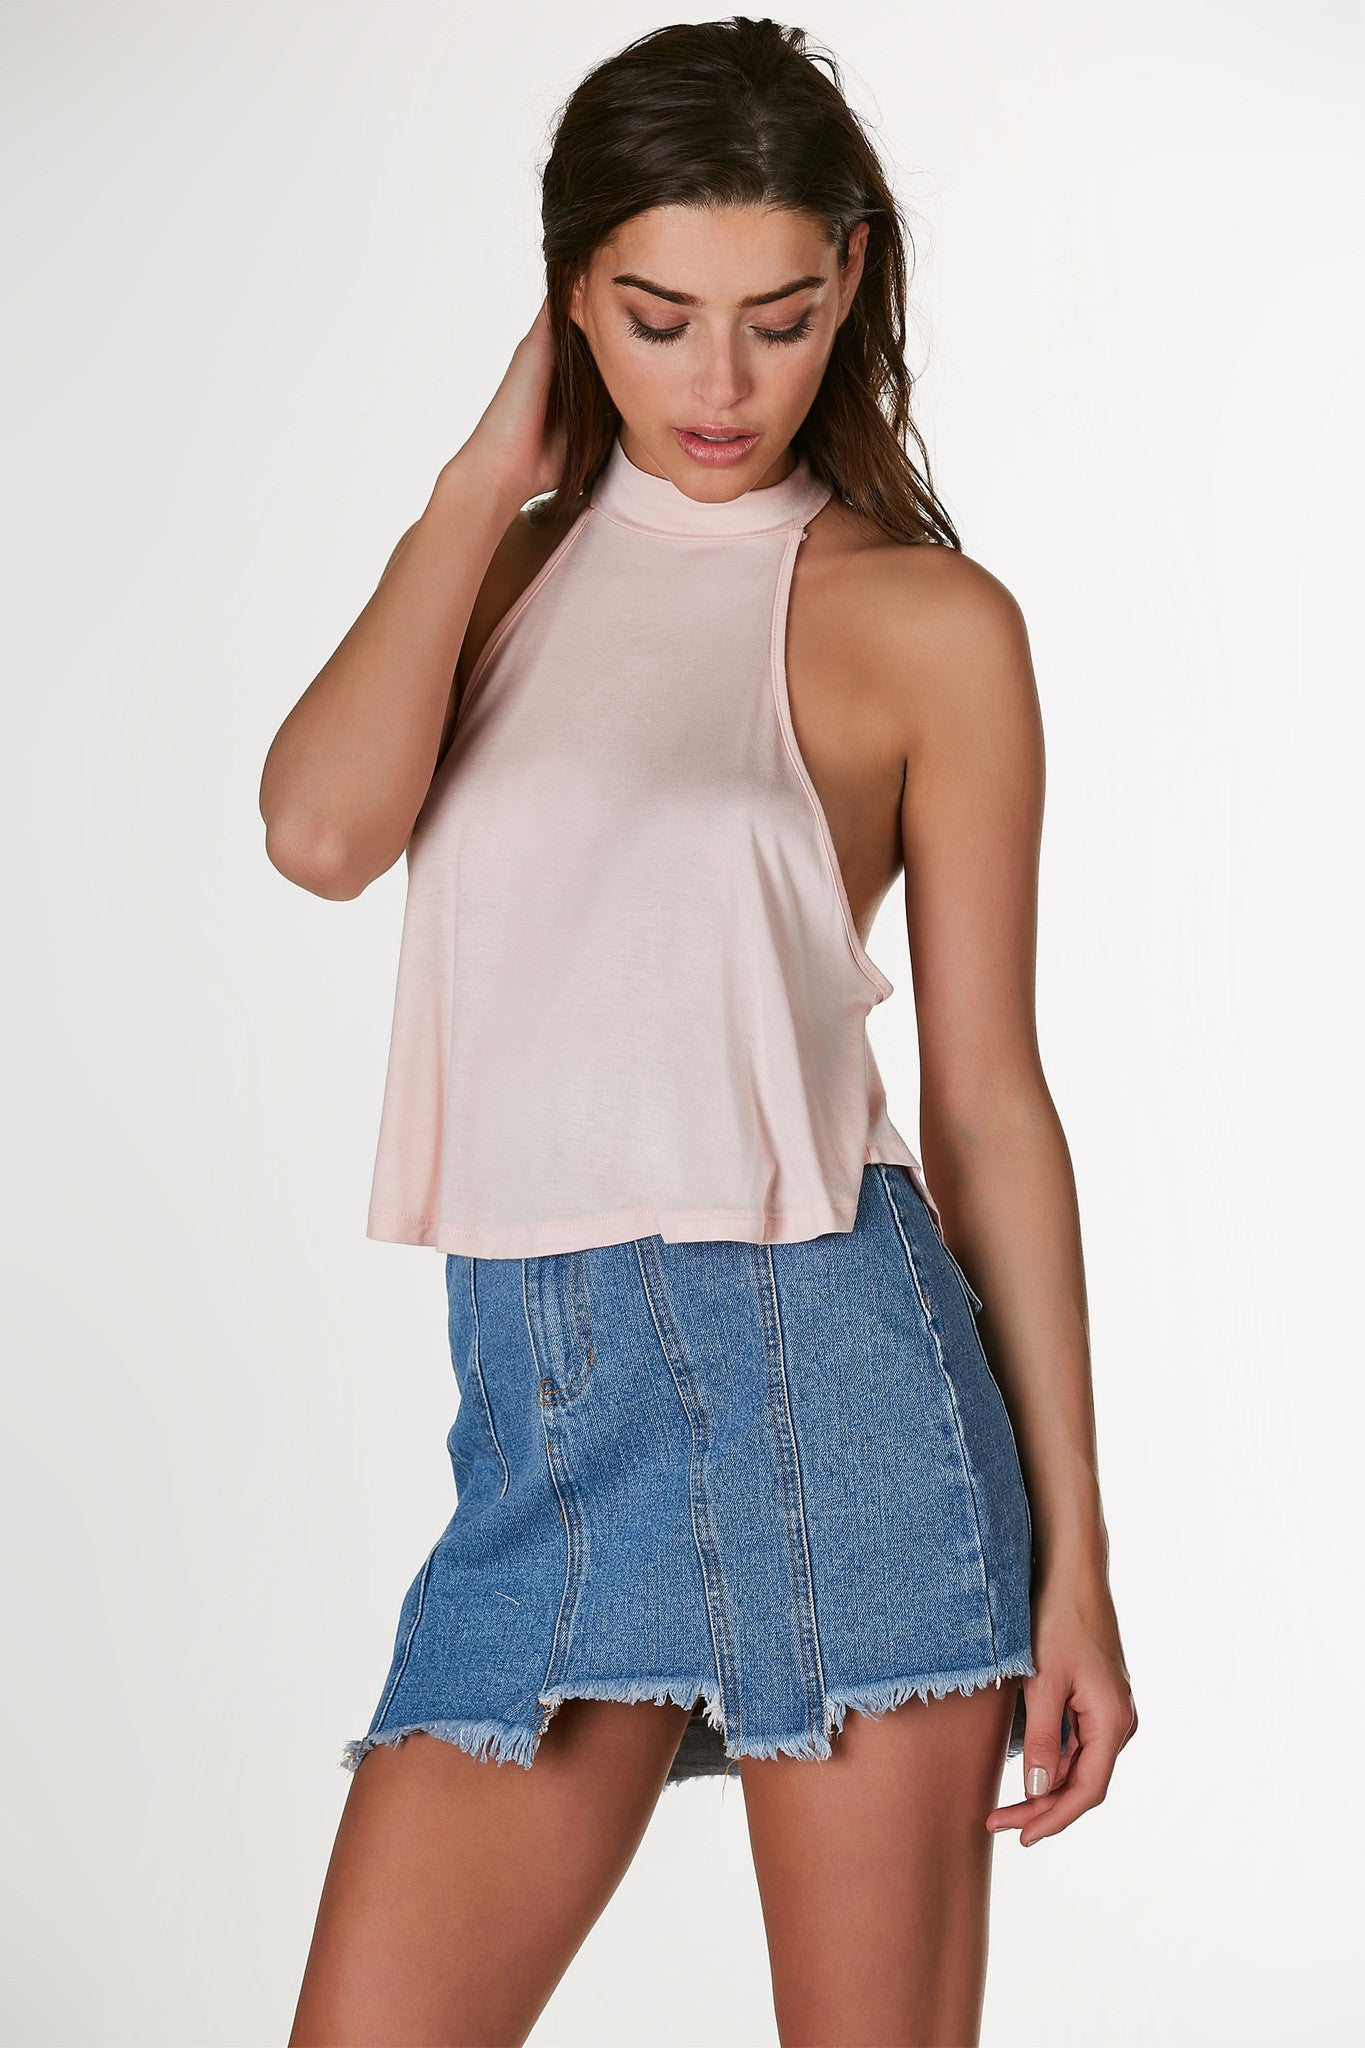 Soft lightweigth sleeve top with flirty A-line hem. Racer back with keyhole finish.